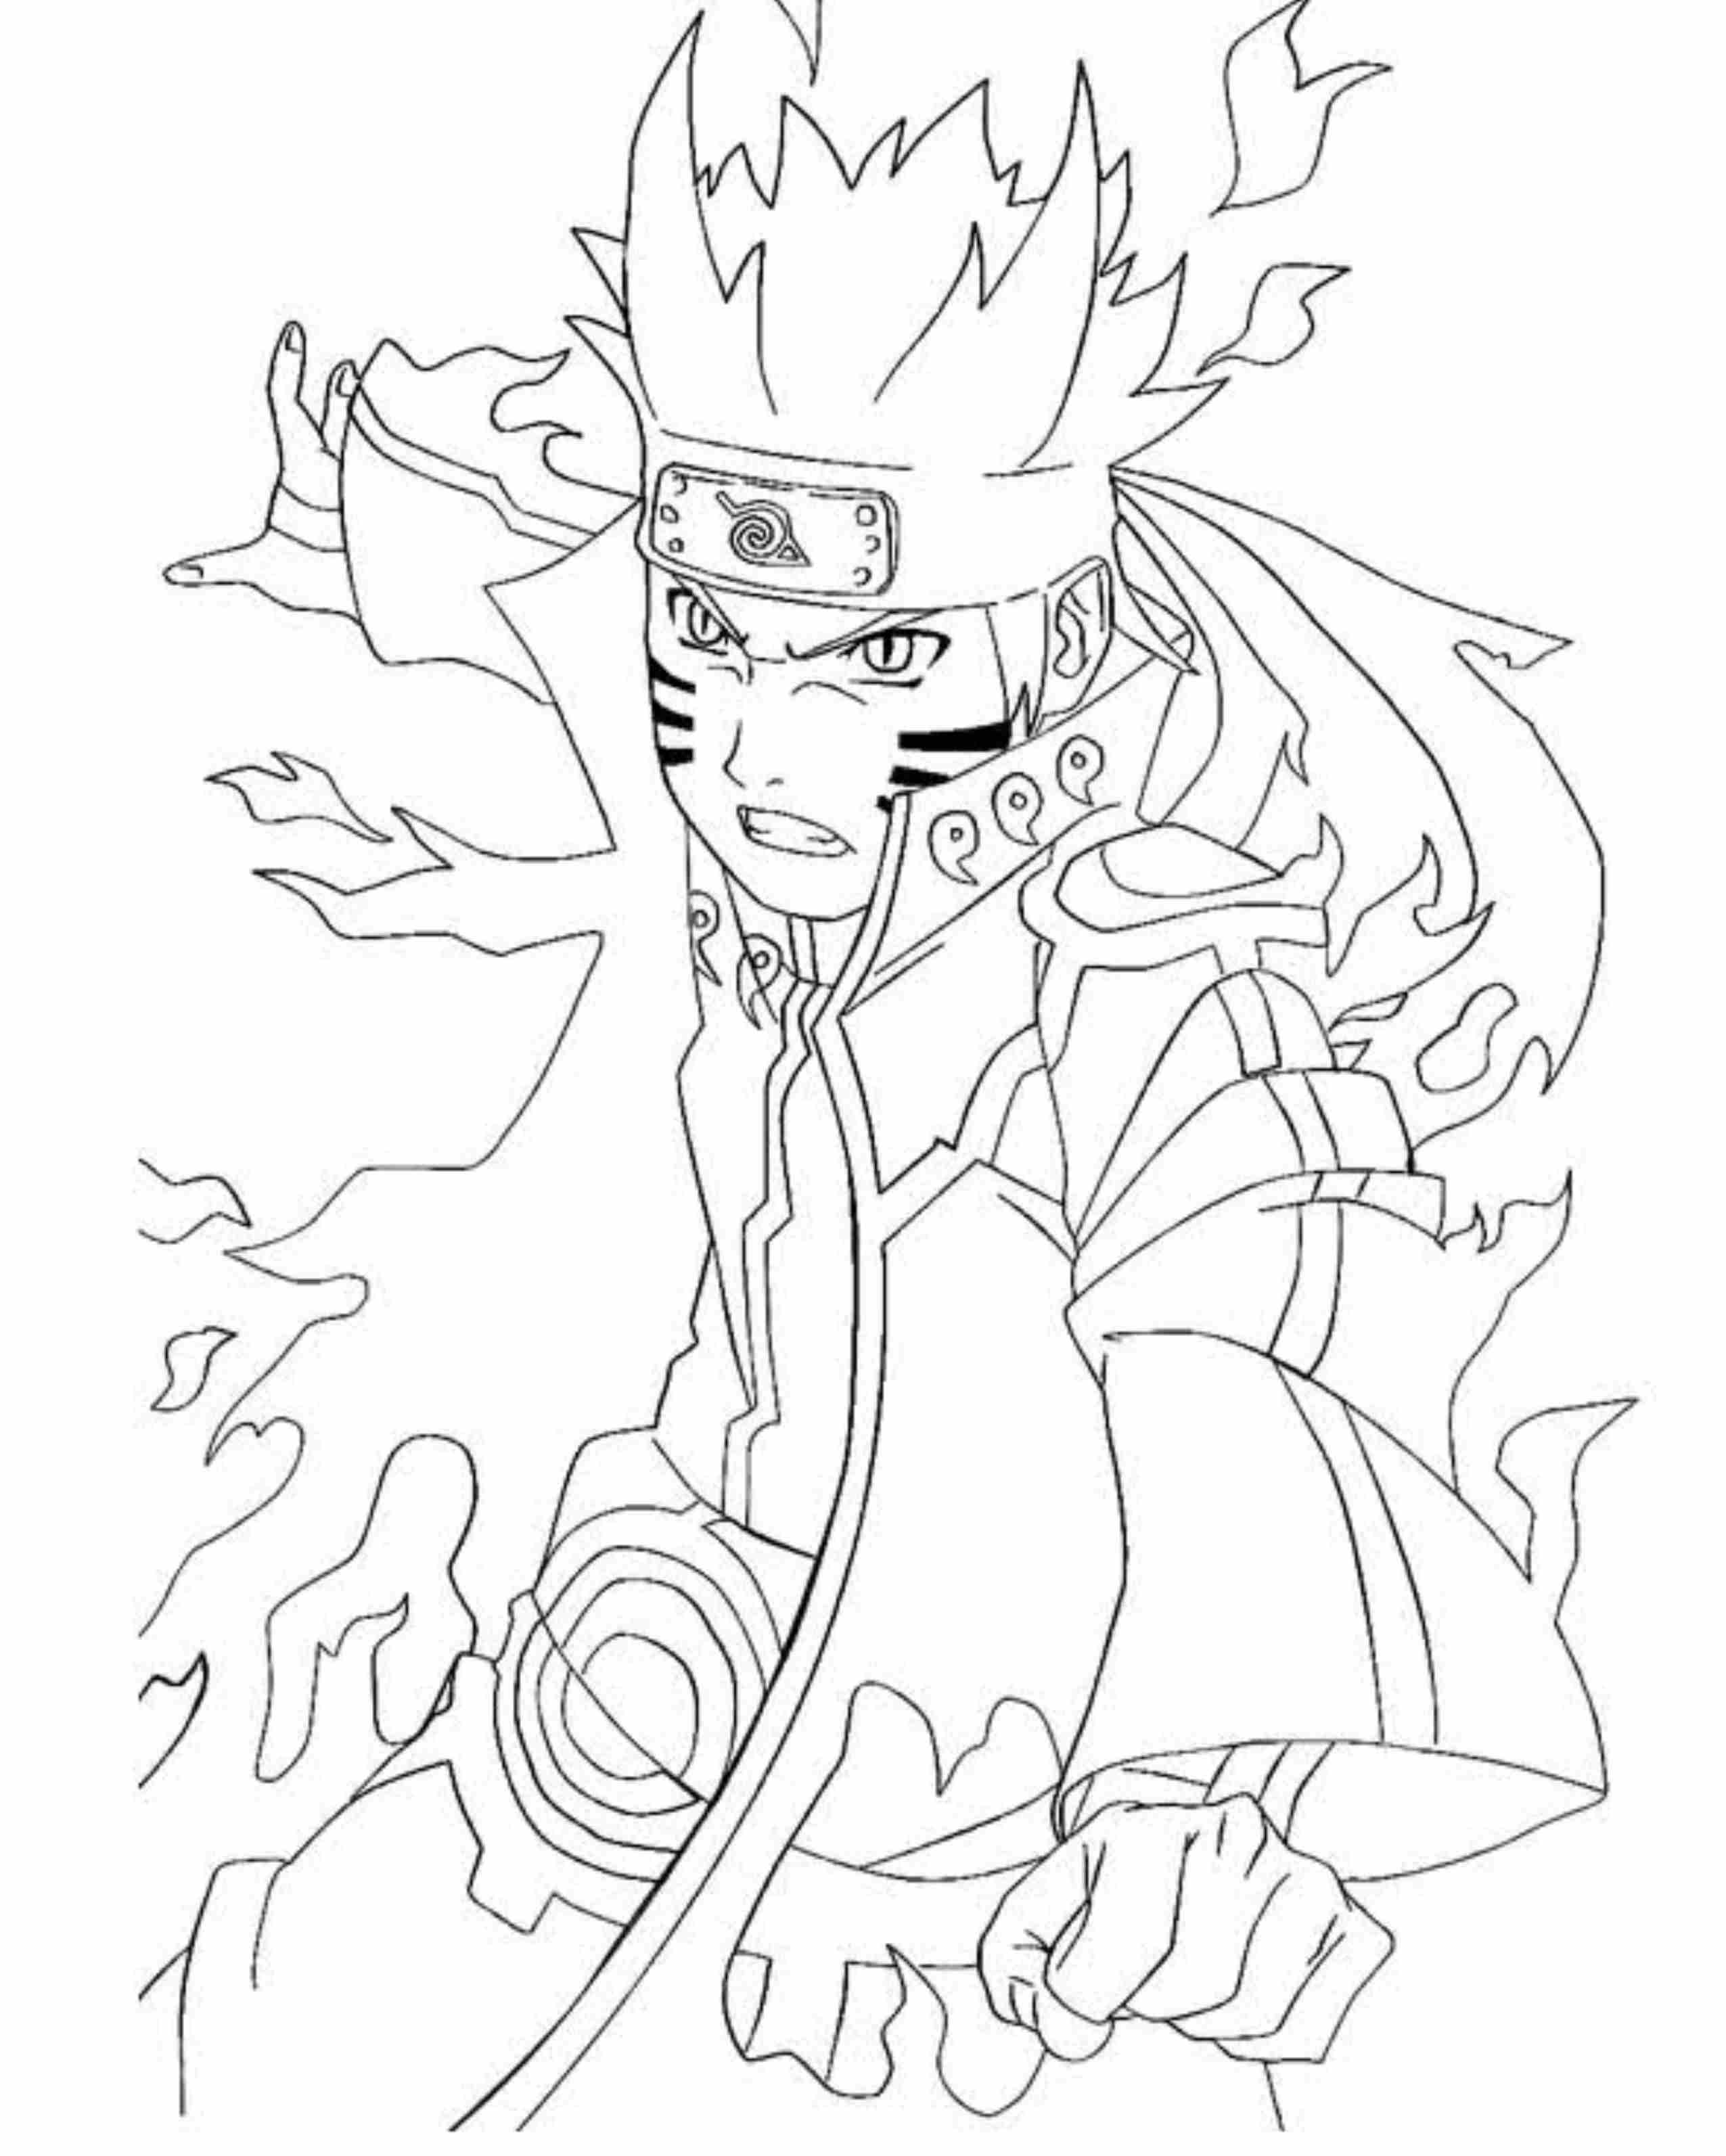 naruto shippuden coloring pages printable naruto coloring pages to get your kids occupied coloring pages shippuden naruto